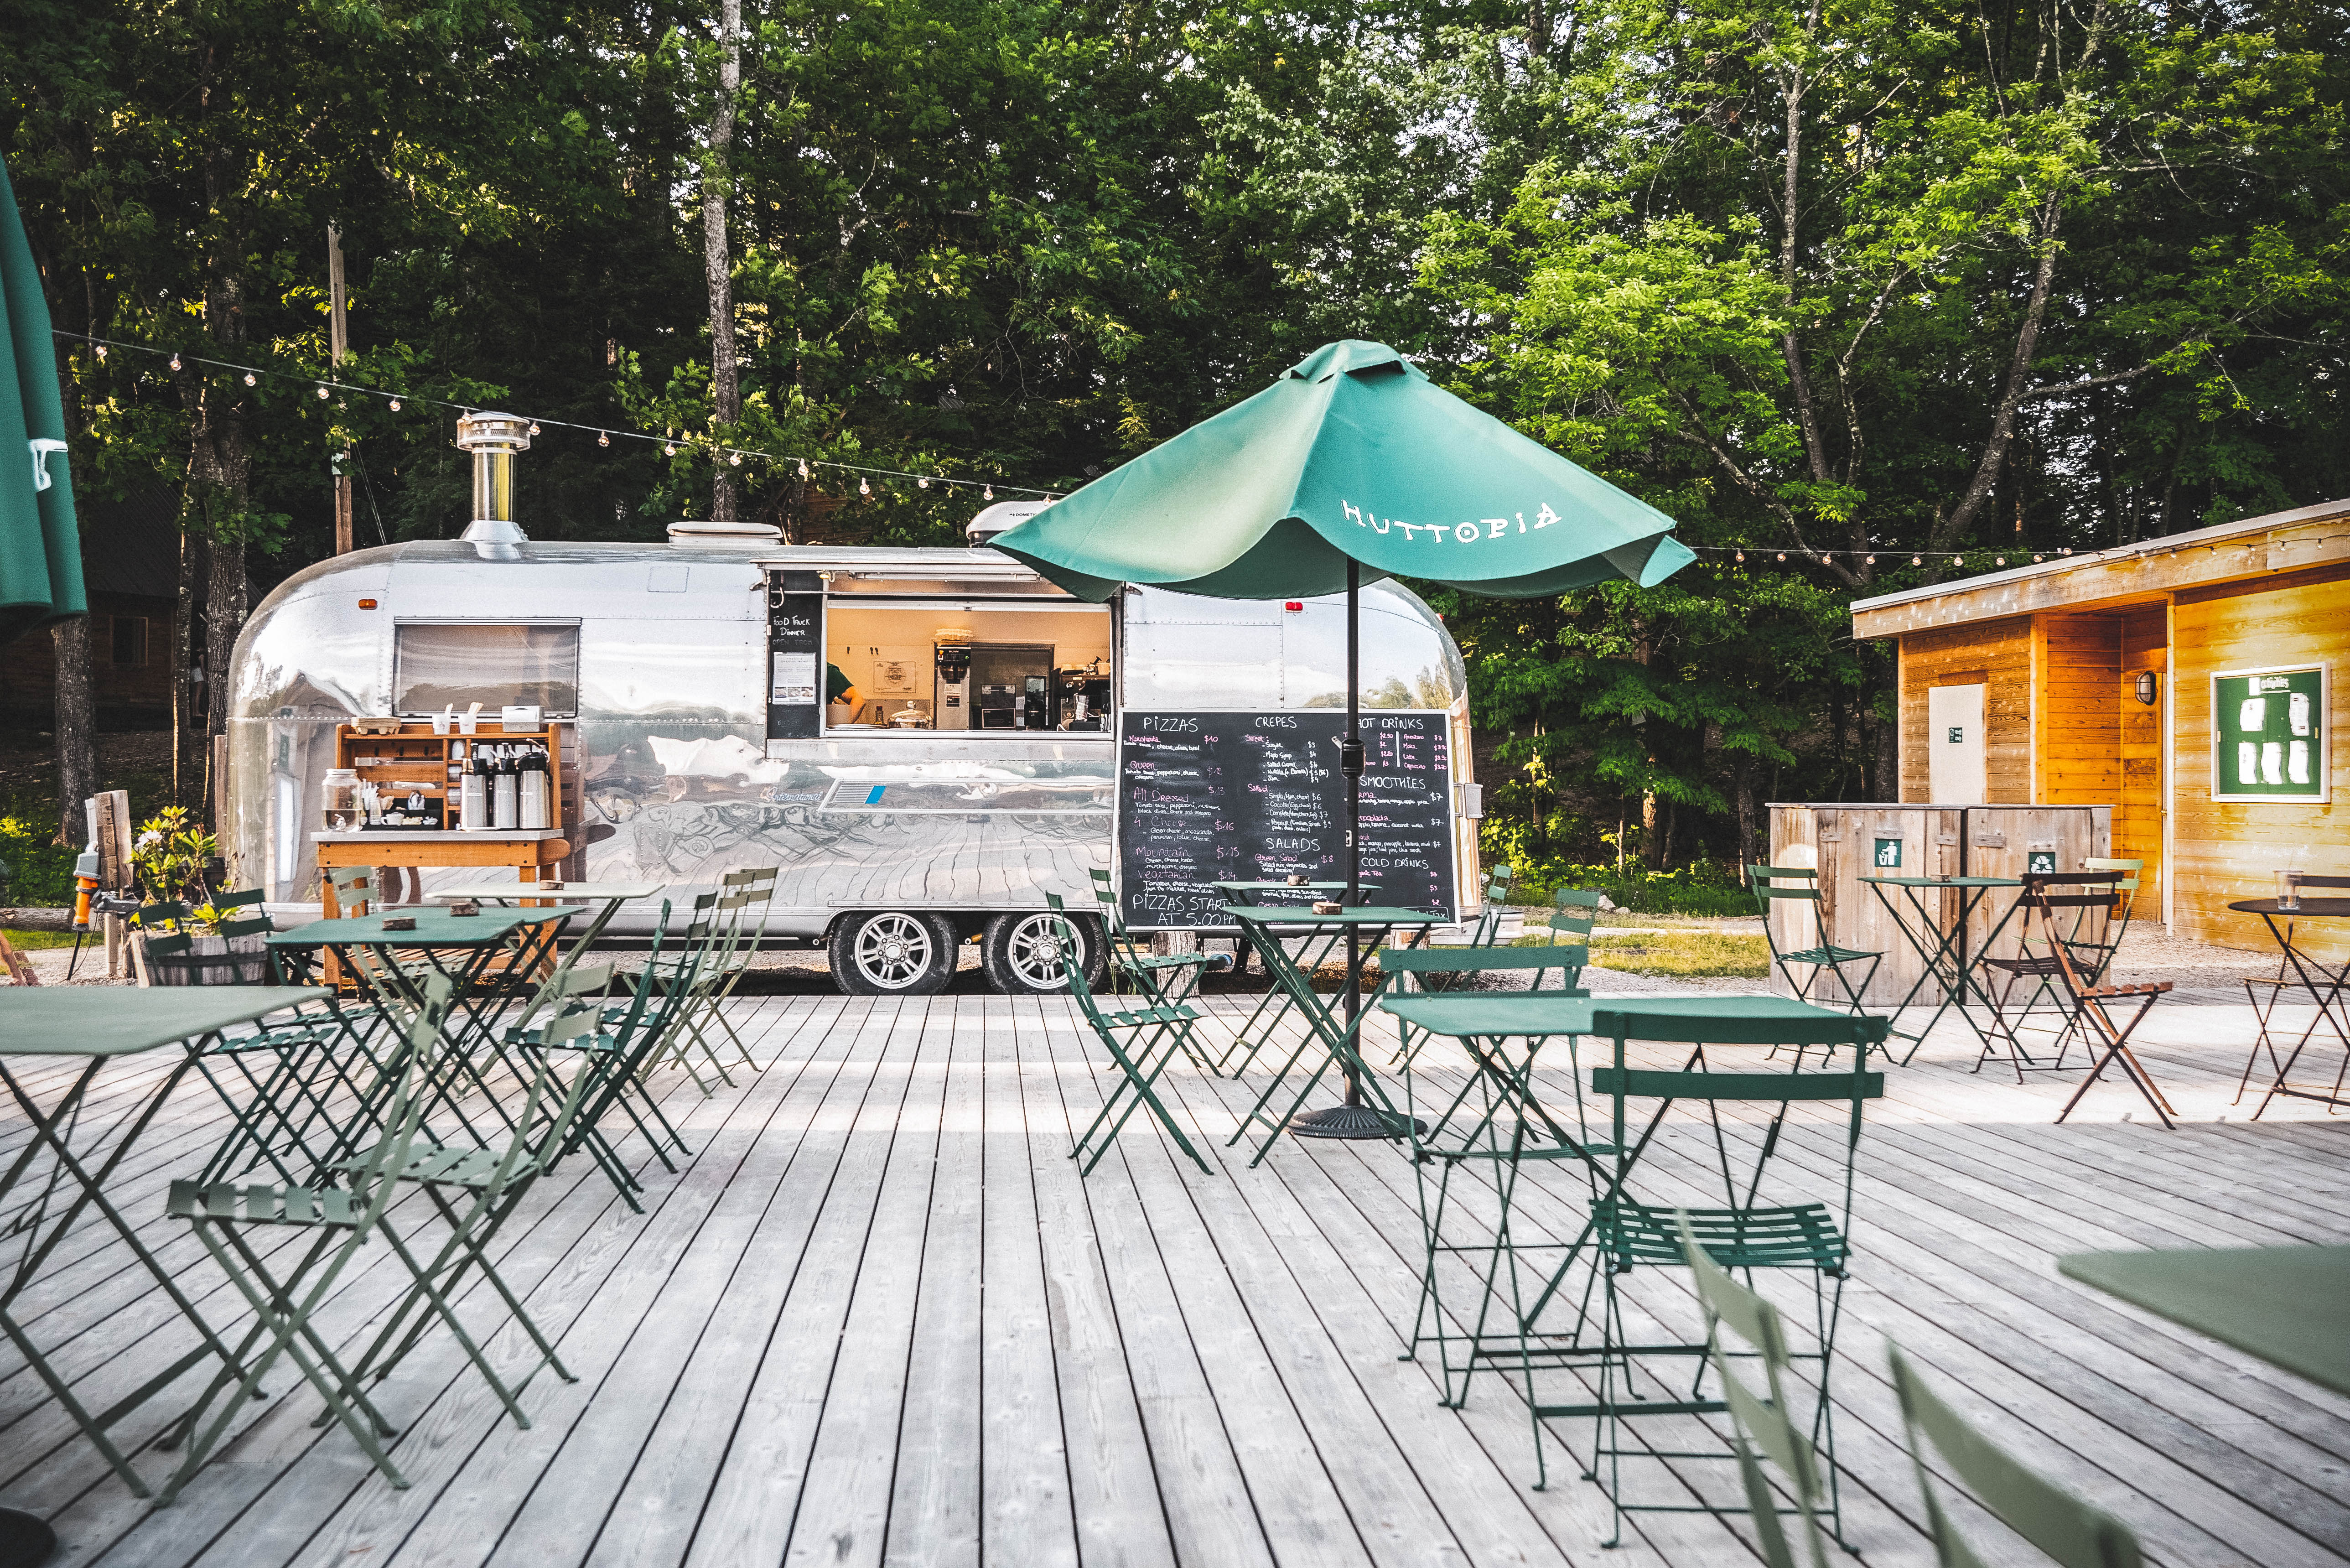 OUR AIRSTREAM FOOD TRUCK